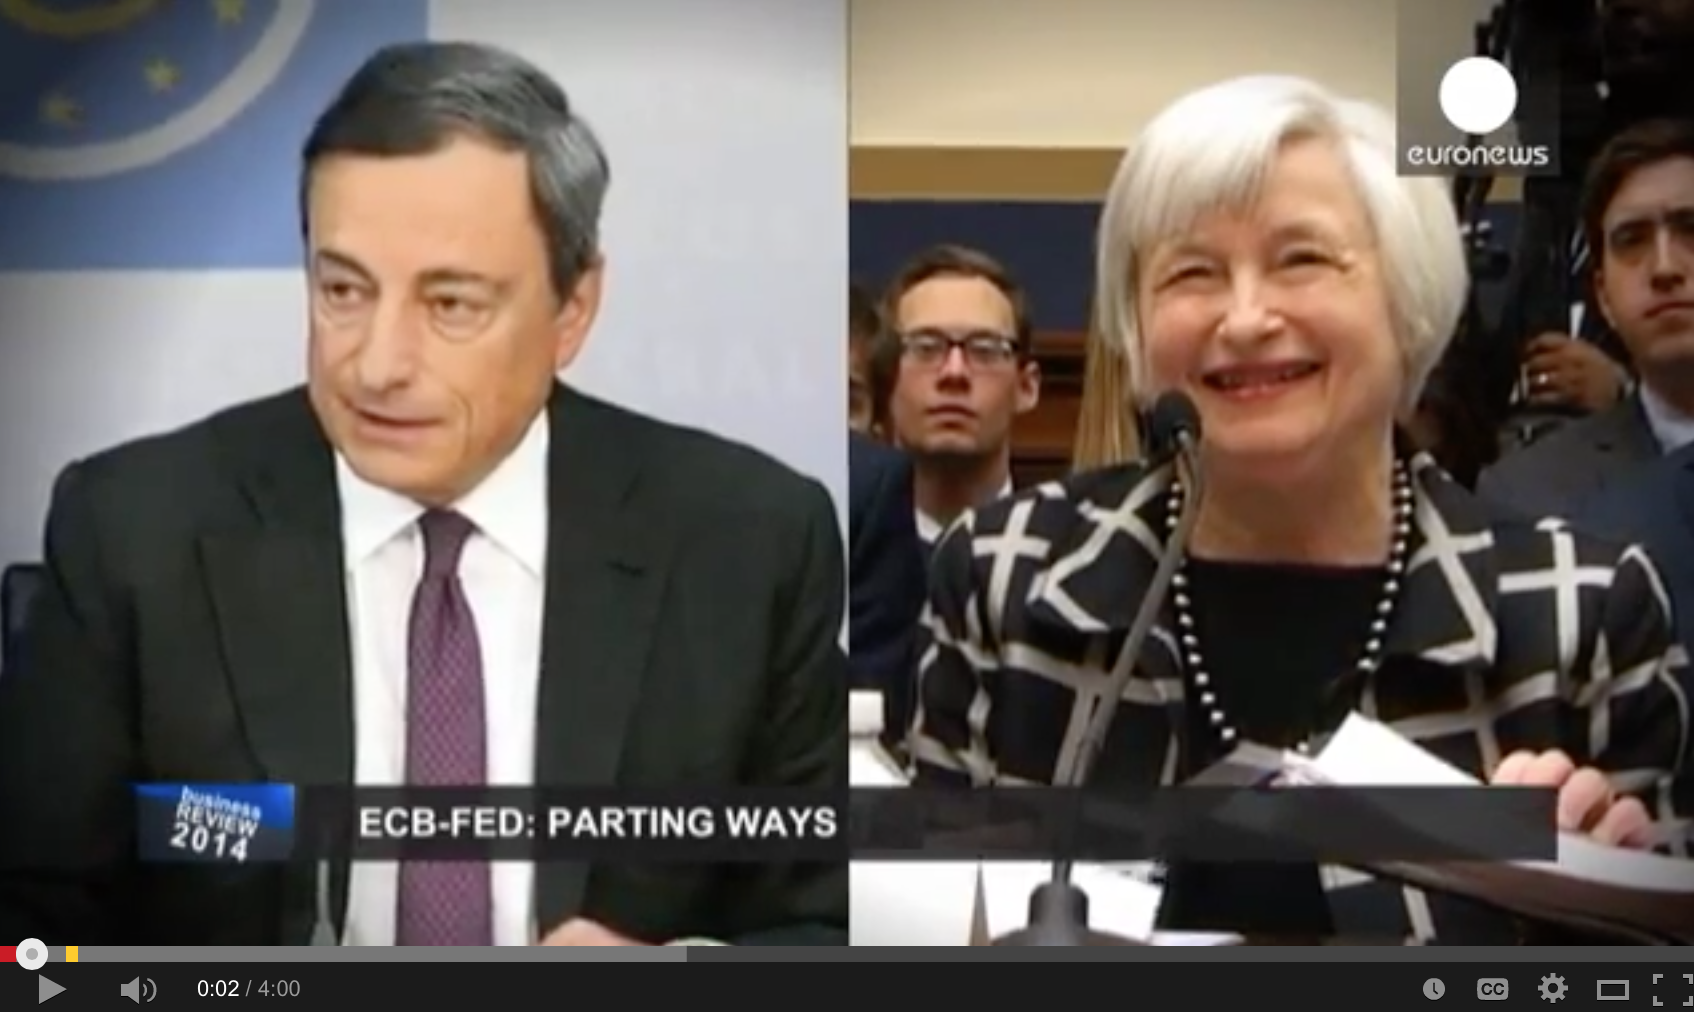 Central banks chose different paths